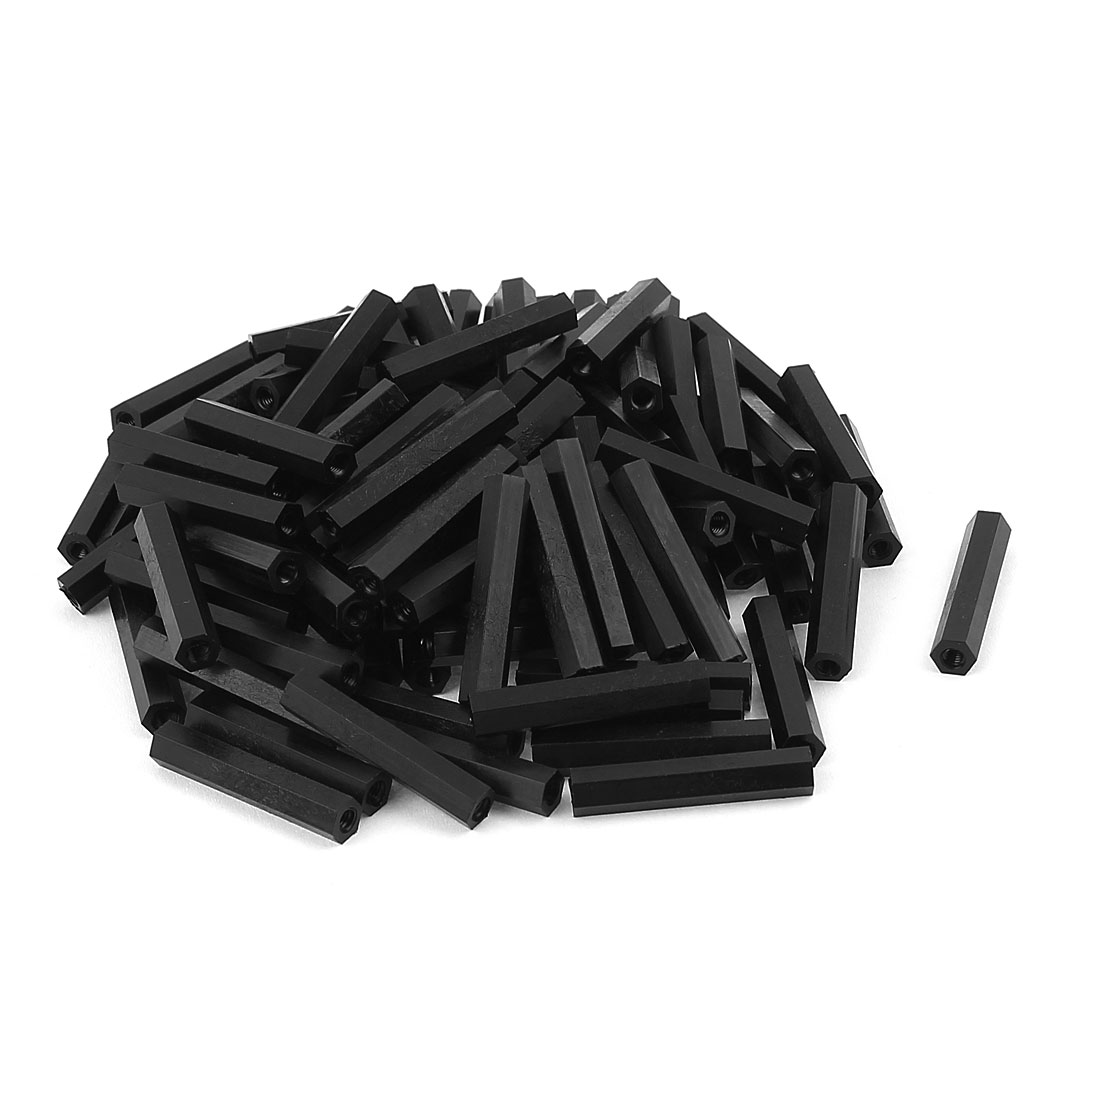 M3x30mm Female Thread Nylon Hex Standoff Spacer PCB Pillar Screw Nut Black 100pcs